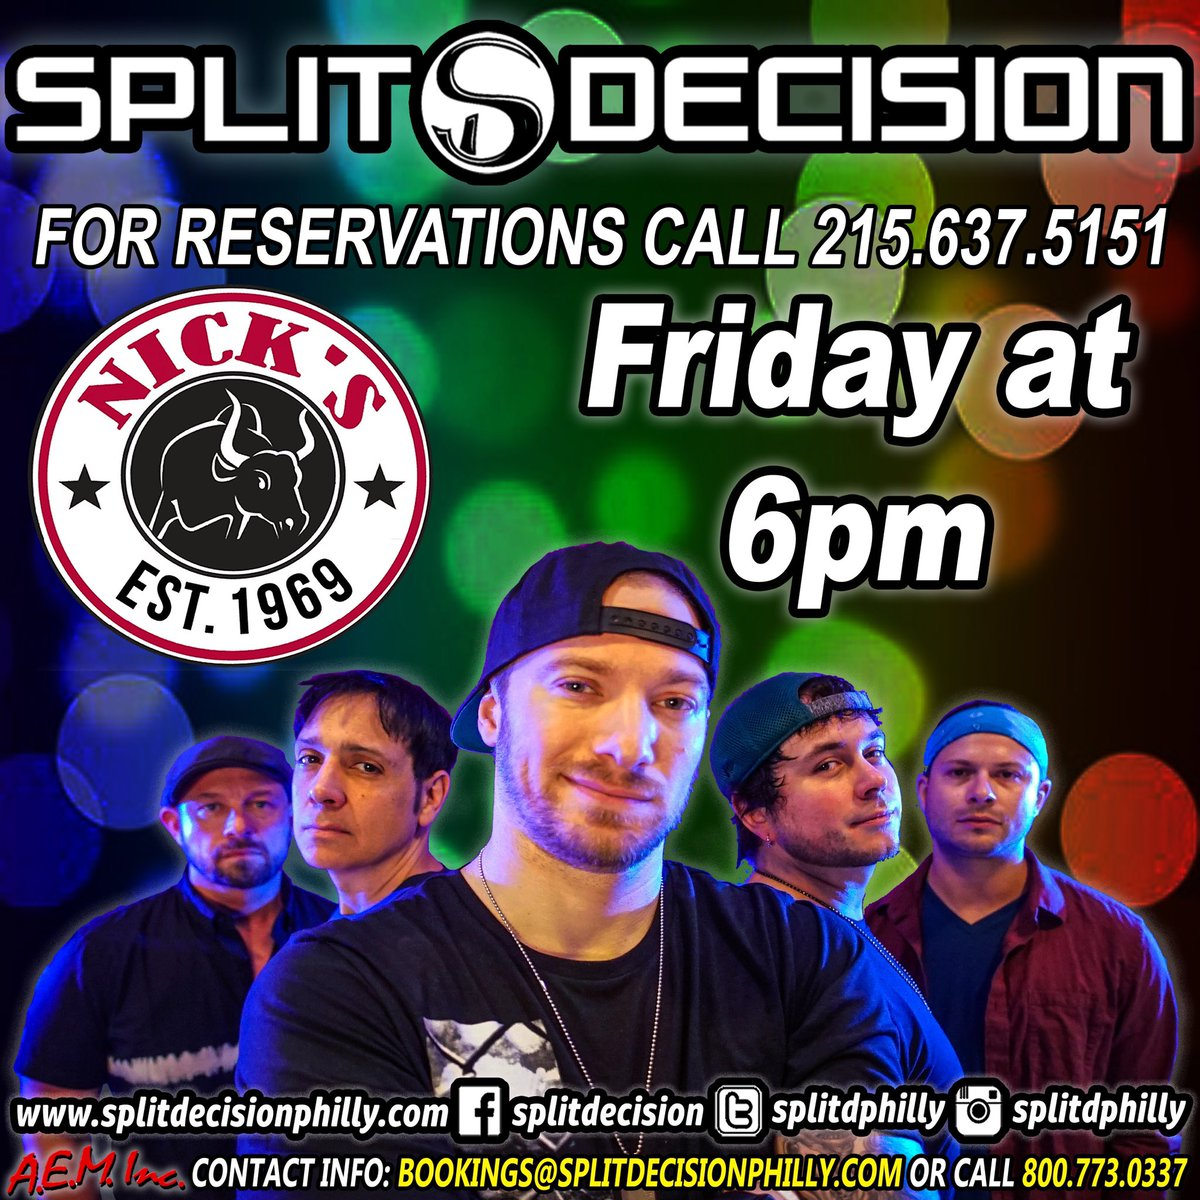 We're back at @NRBWoodhaven this Friday! Call ahead and reserve your spot!